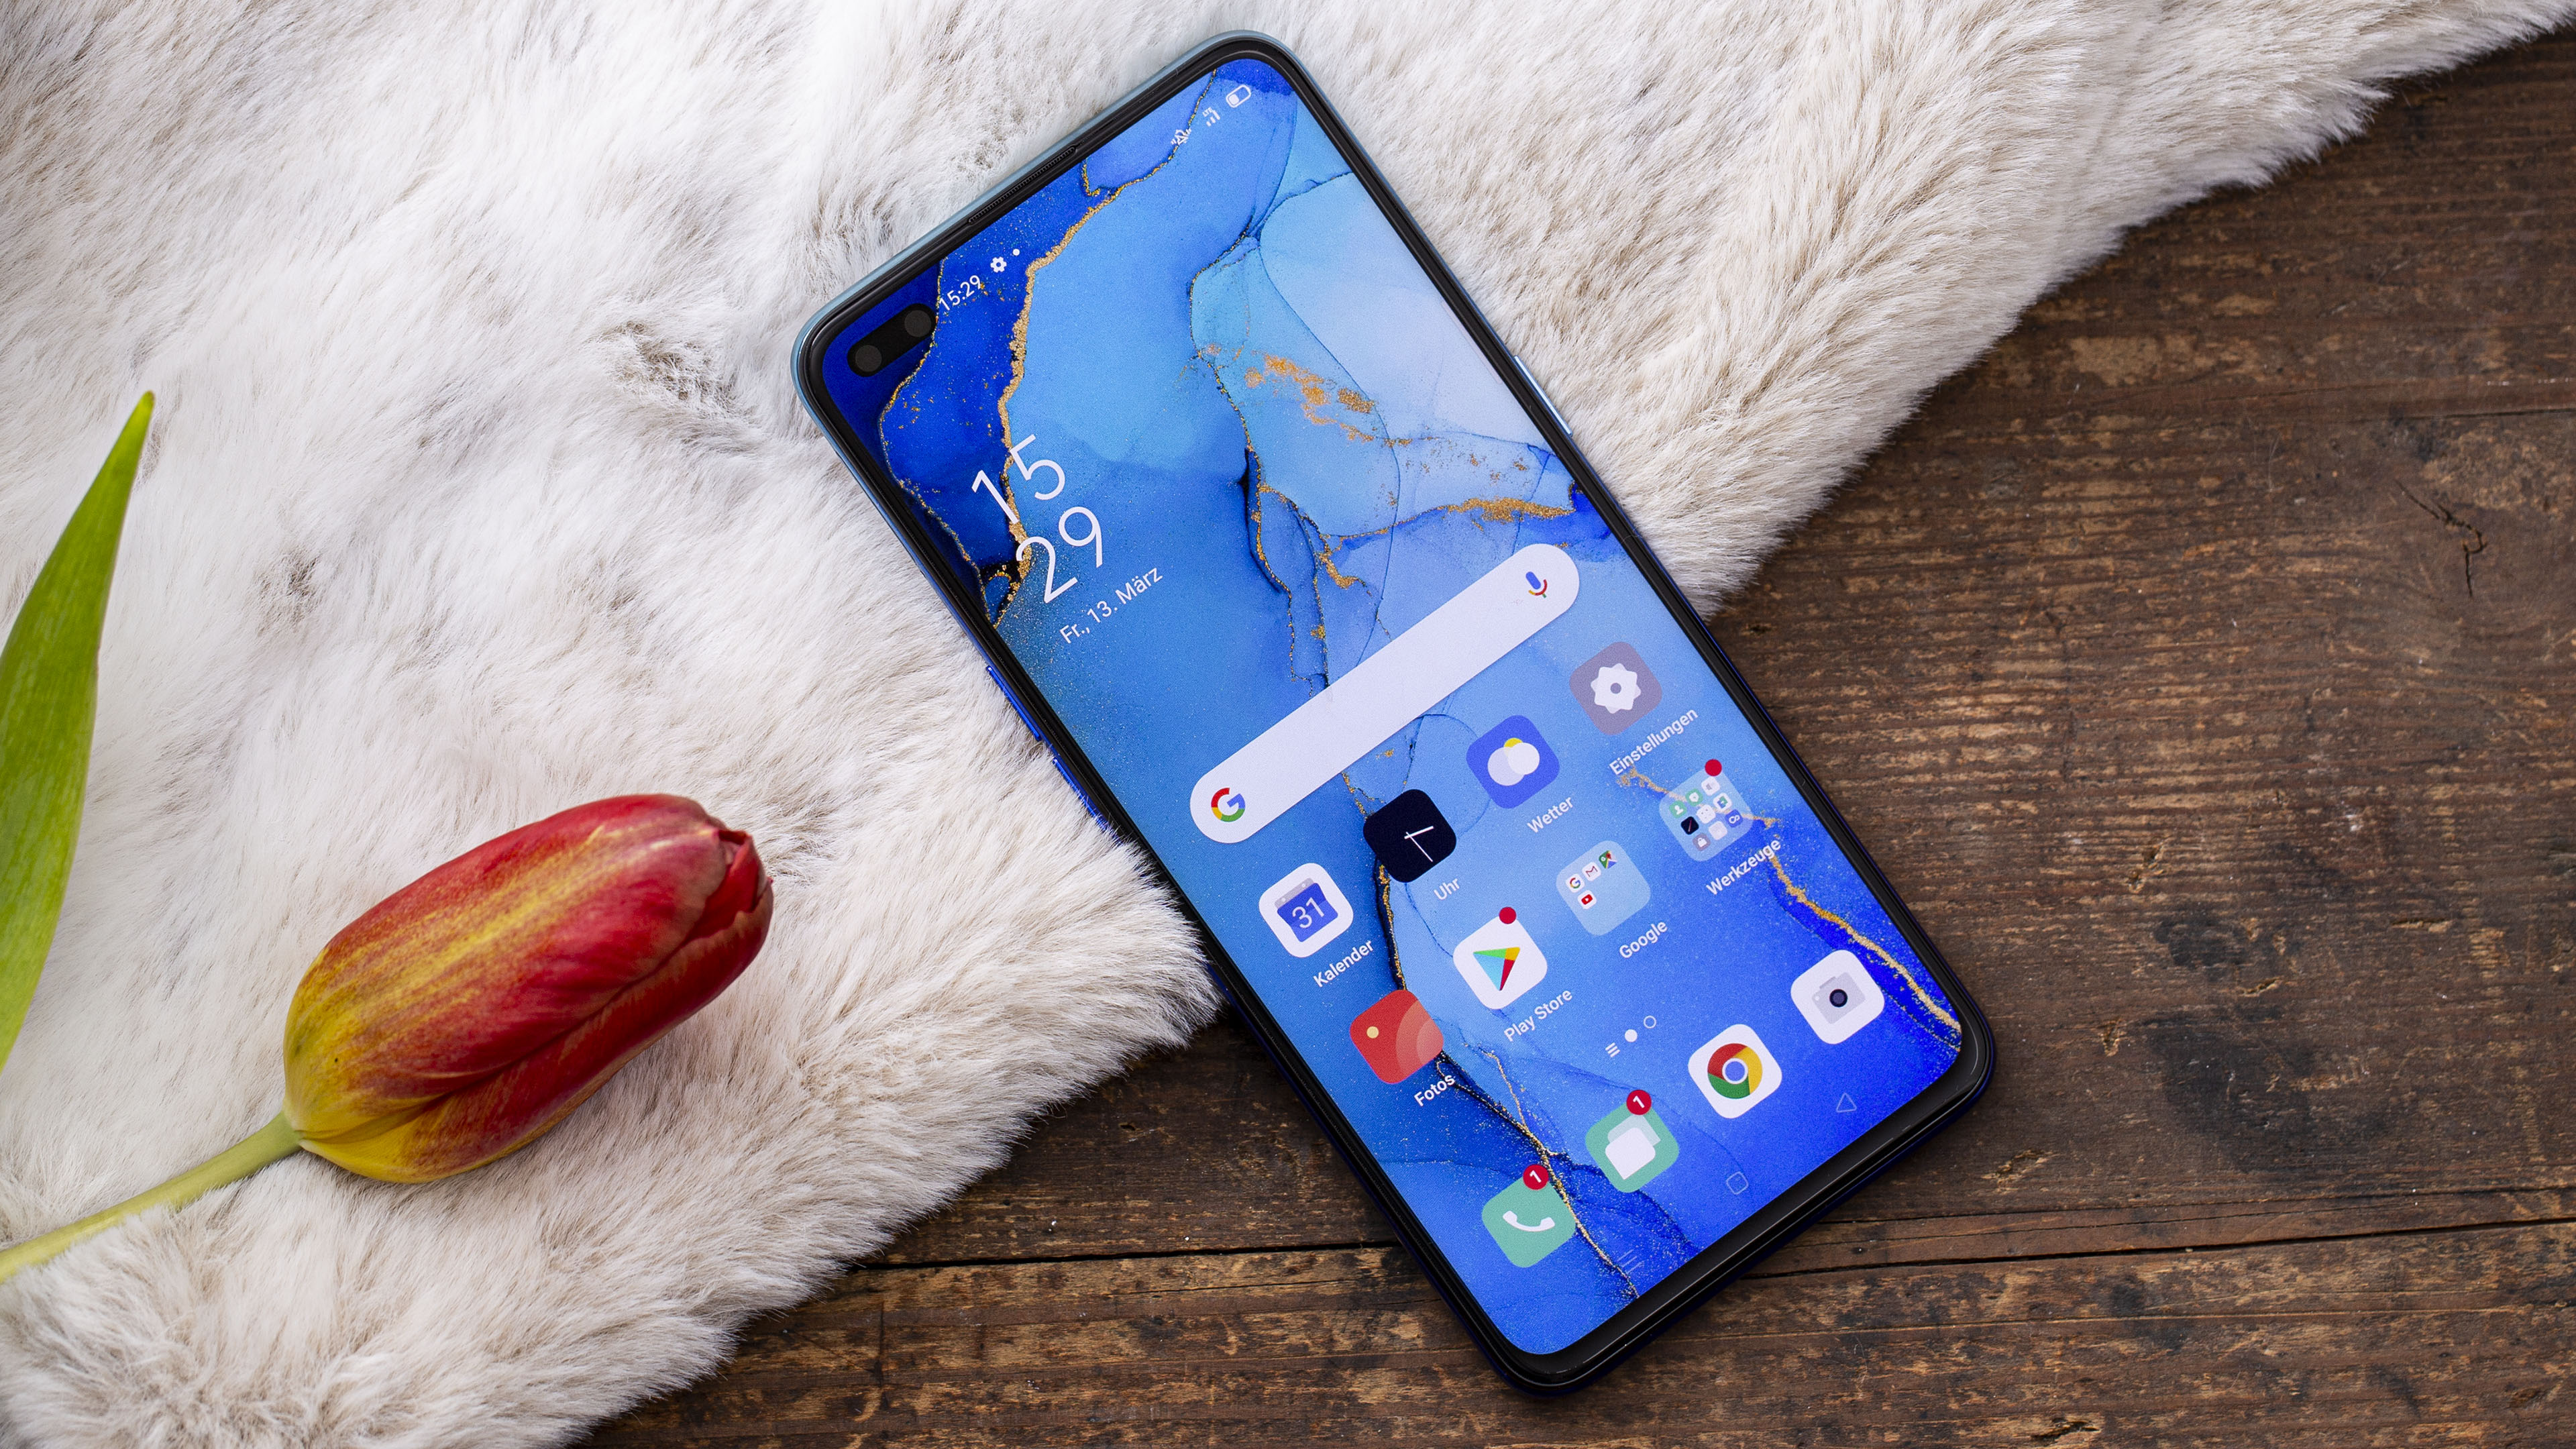 Oppo Reno 3 Pro review: a practical phone with annoying quirks ...